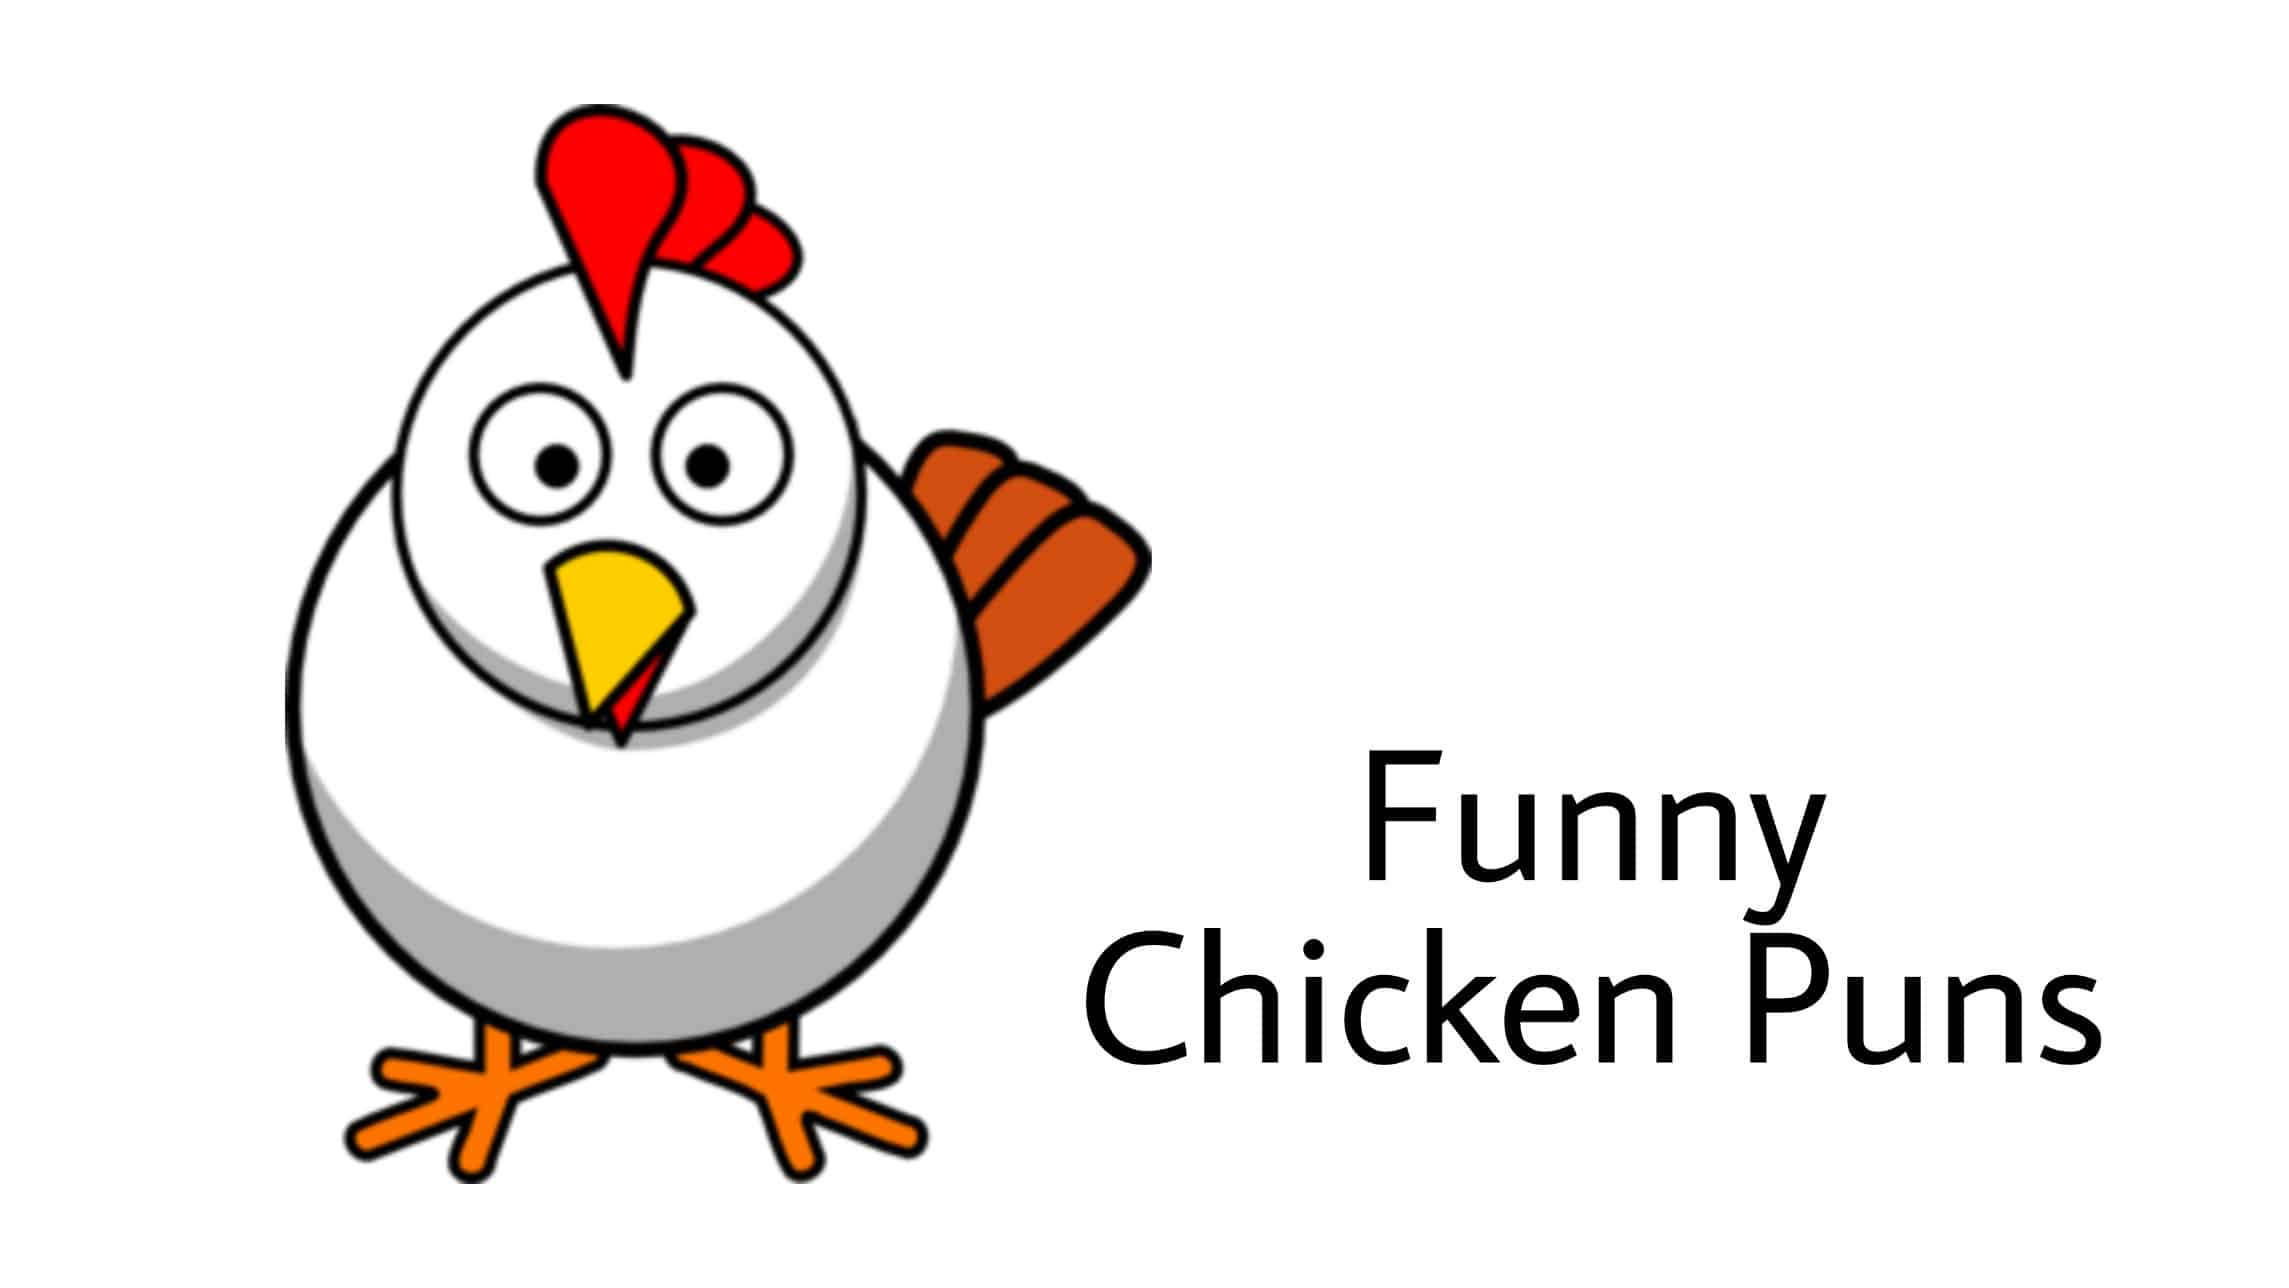 80+ Best Chicken puns Guaranteed To Make You Laugh